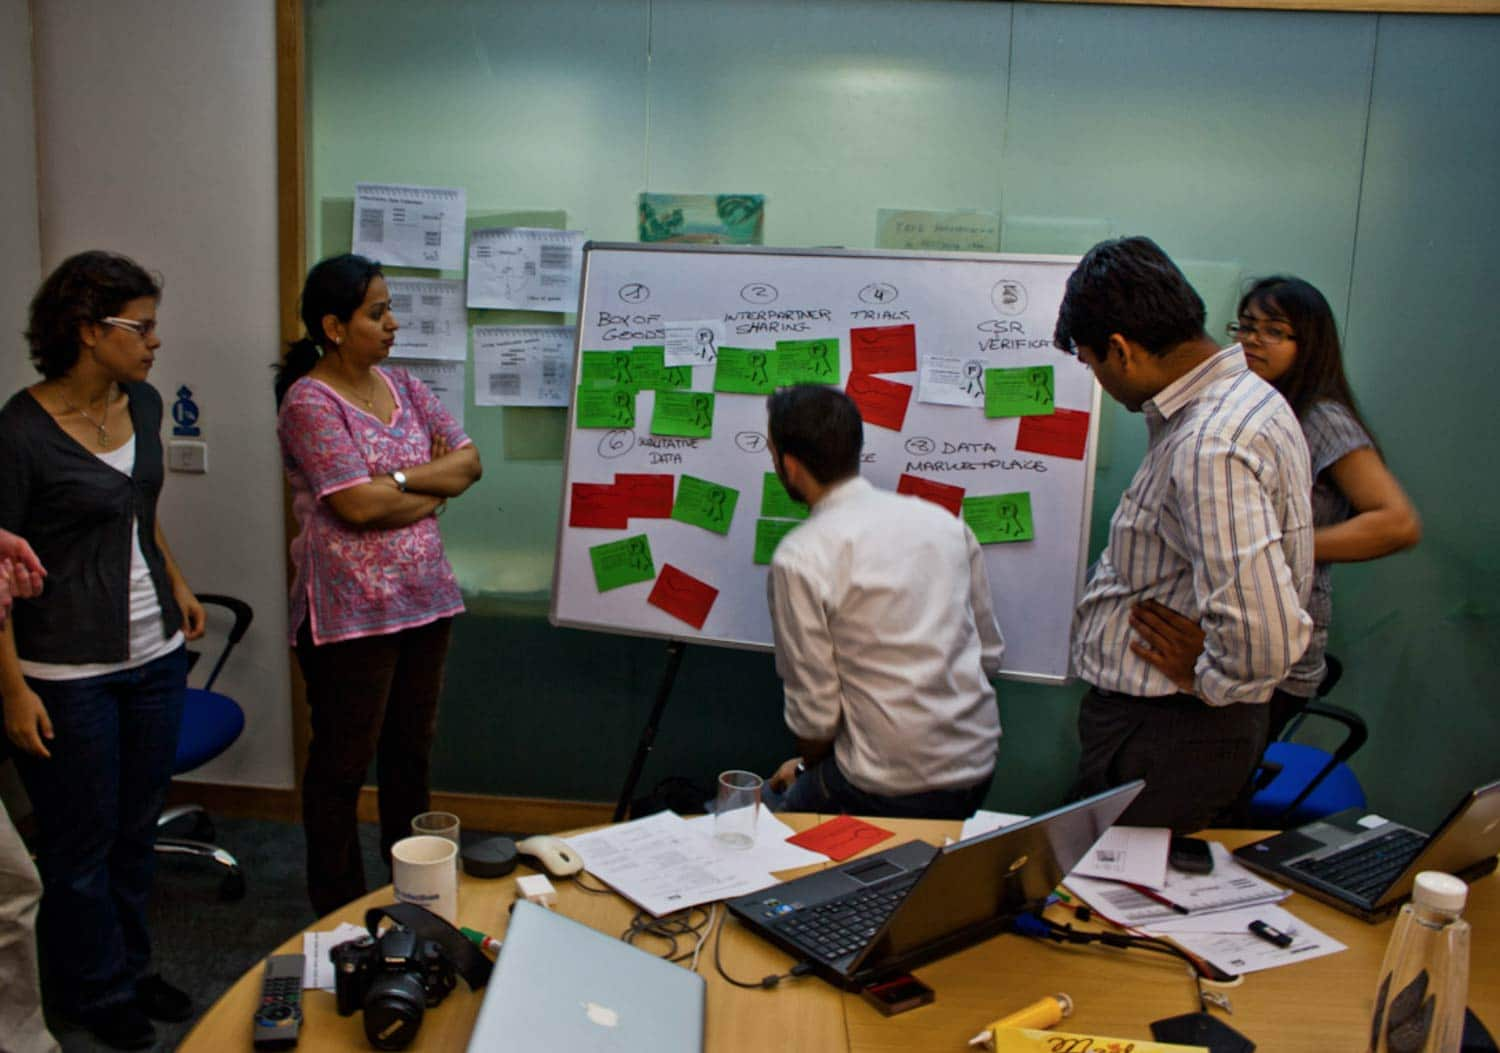 Workshop at the DSM office in India, discussing different concepts